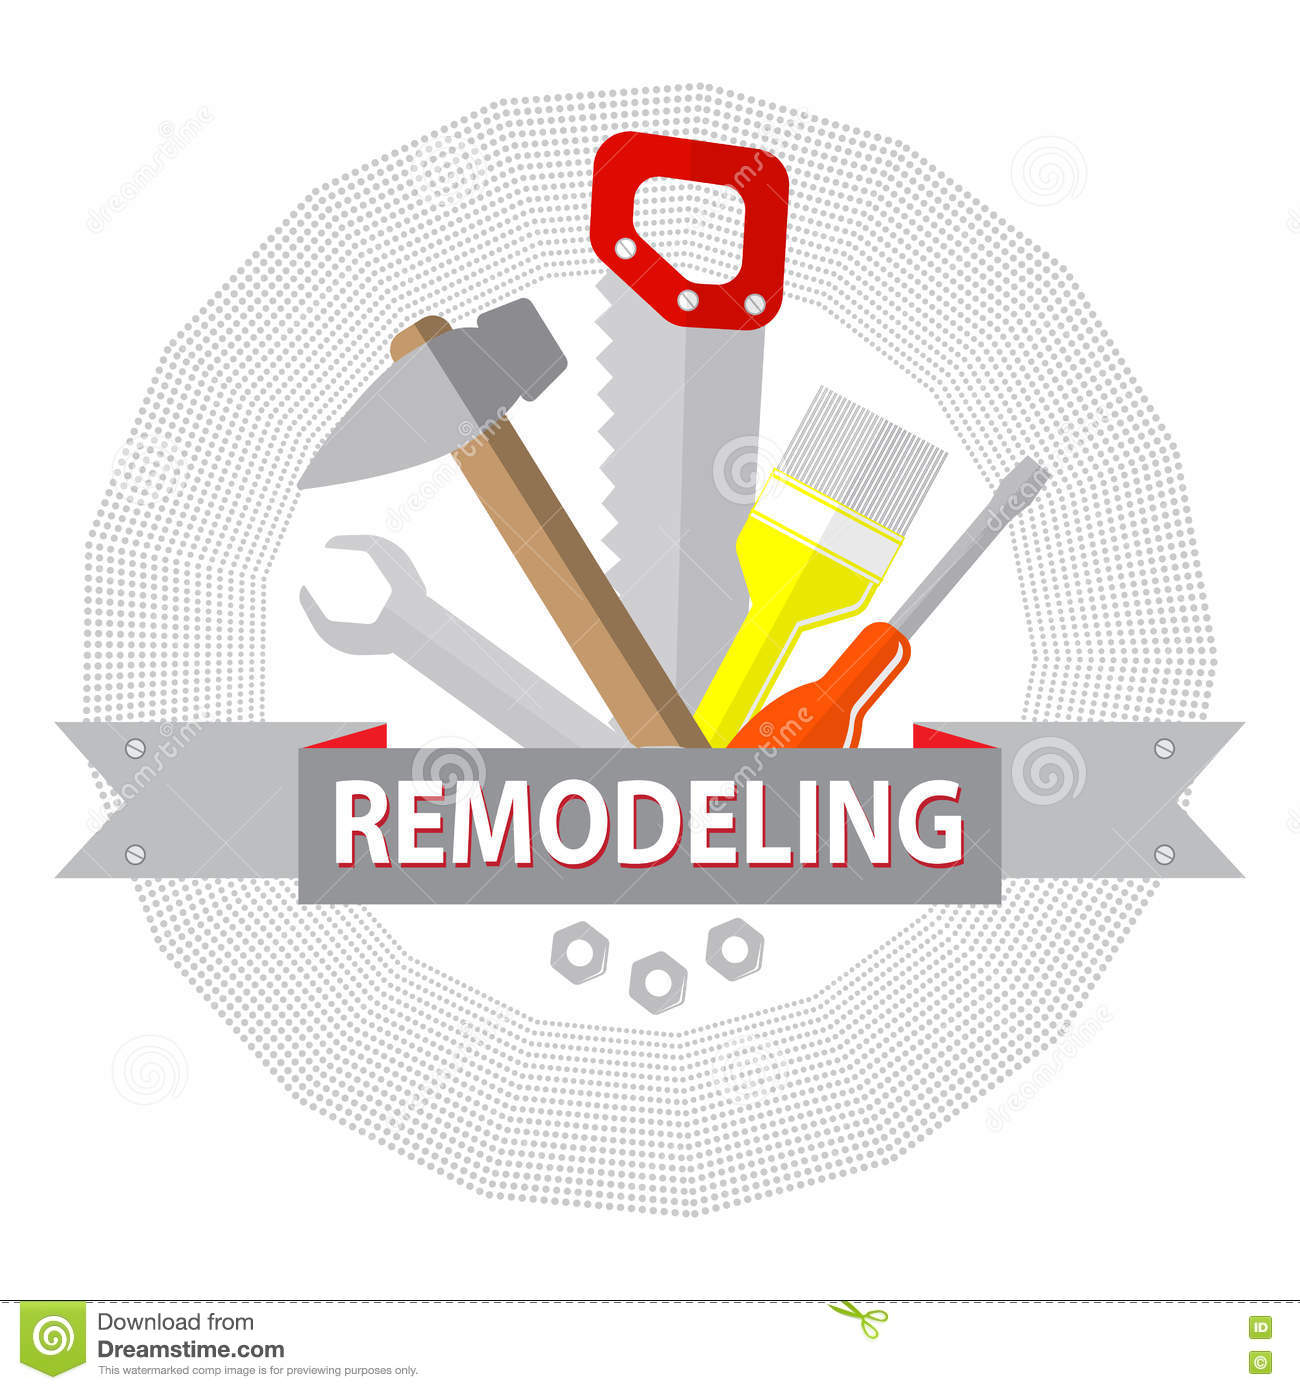 Home remodeling logo remodeling logo clipart - House Remodel Tools Logo Home Repair Service Stock Images